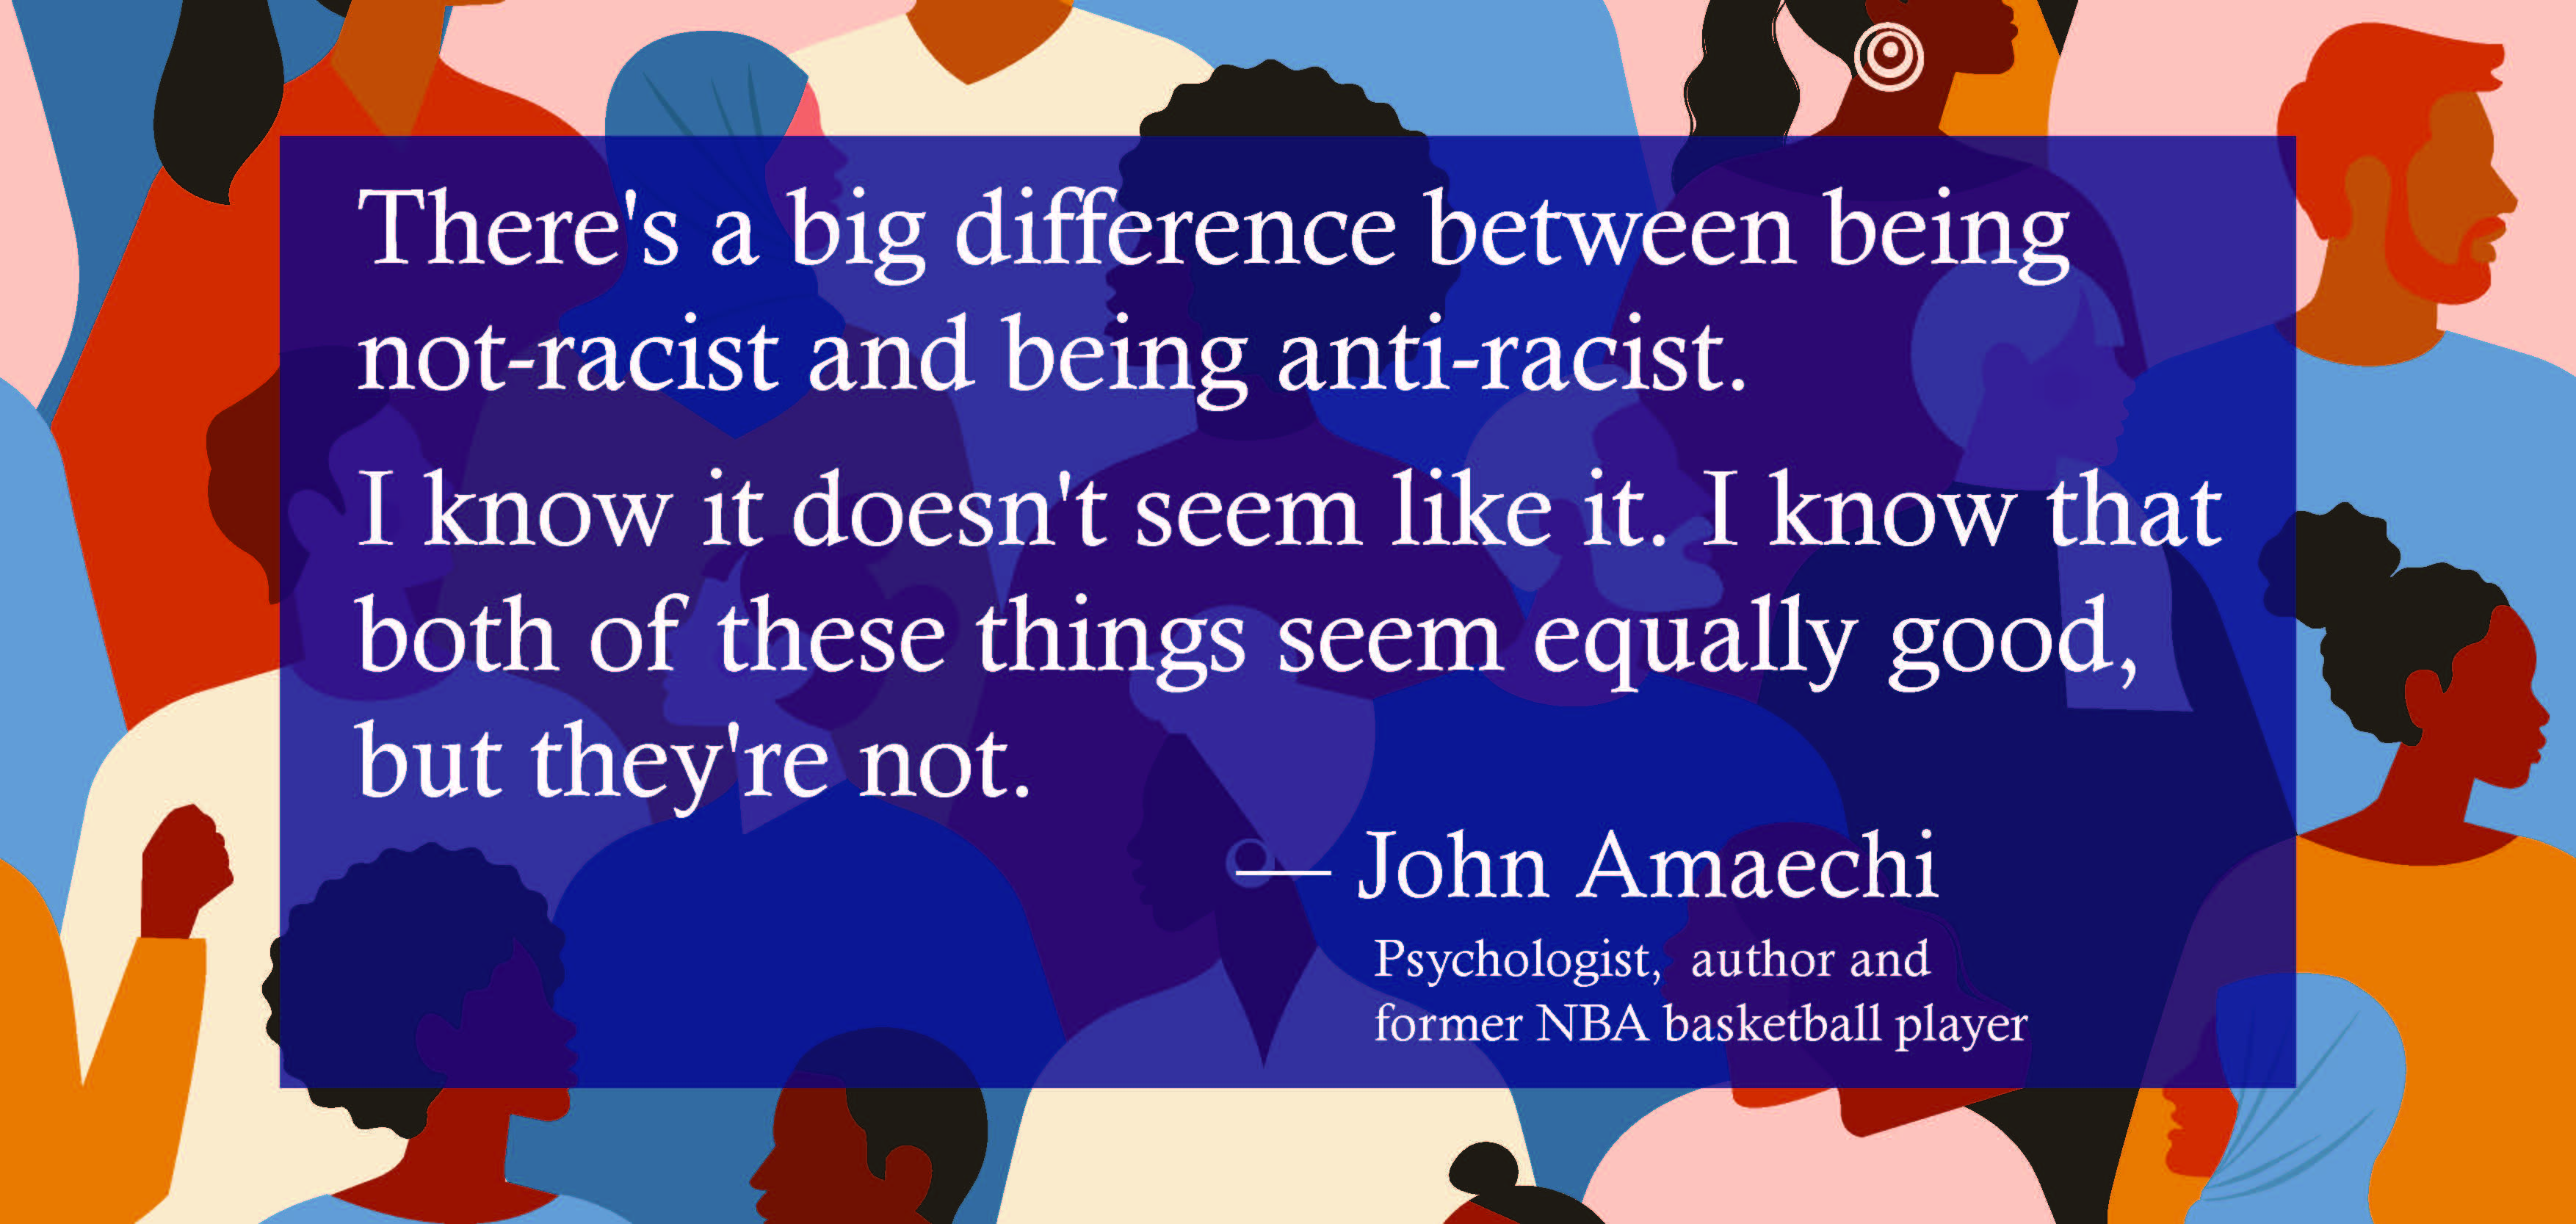 There's a big difference between being not-racist and being anti-racist. I know it doesn't seem like it. I know that both of these things seem equally good, but they're not.  John Amaechi, Psychologist,  author and former NBA basketball player